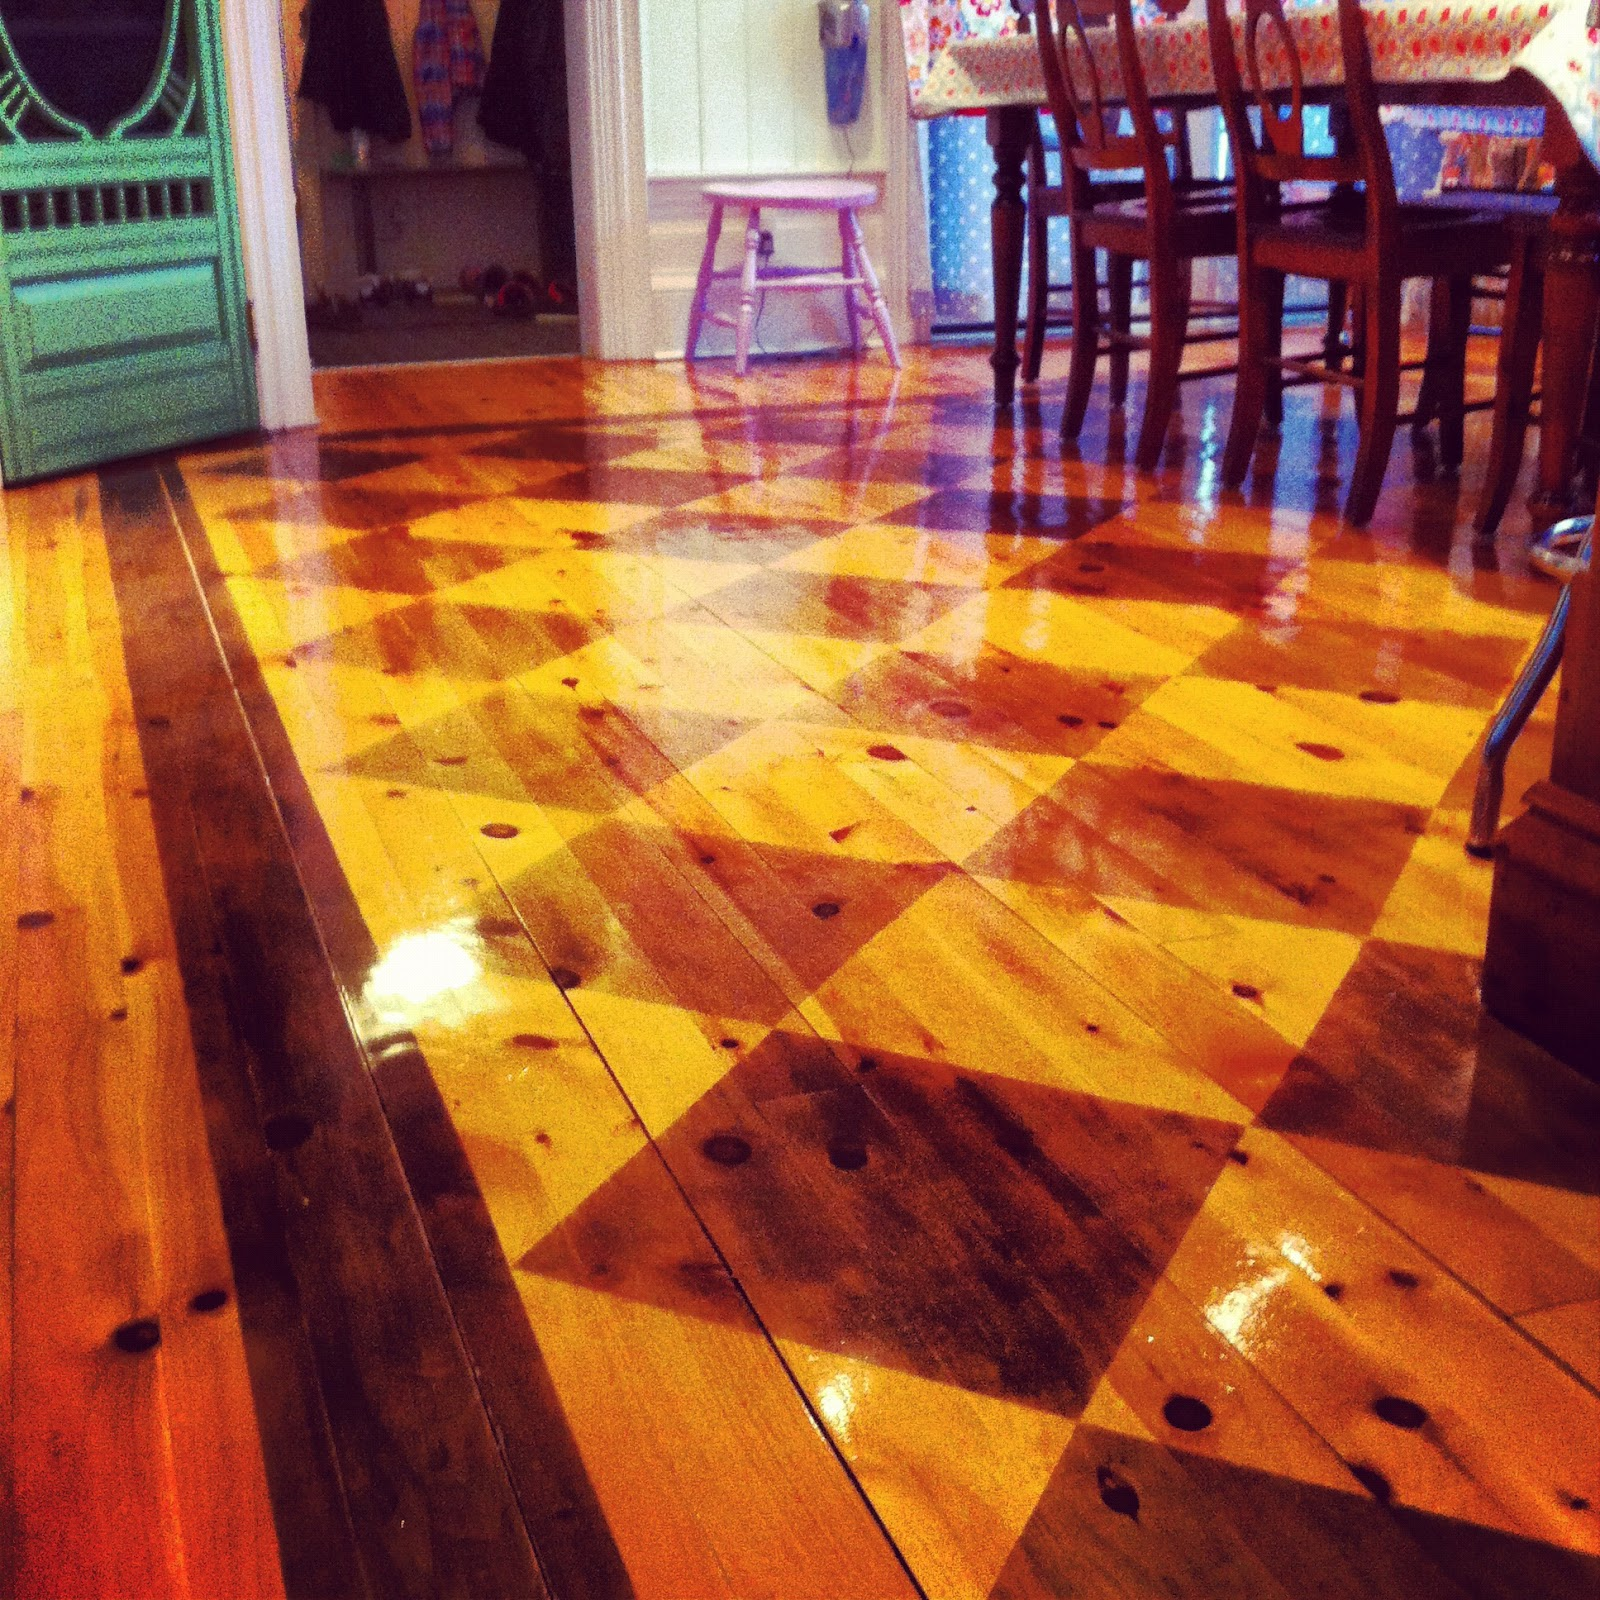 Painting Wooden Floors: Do You Love Him Loretta?: Checkerboard Painted Floors